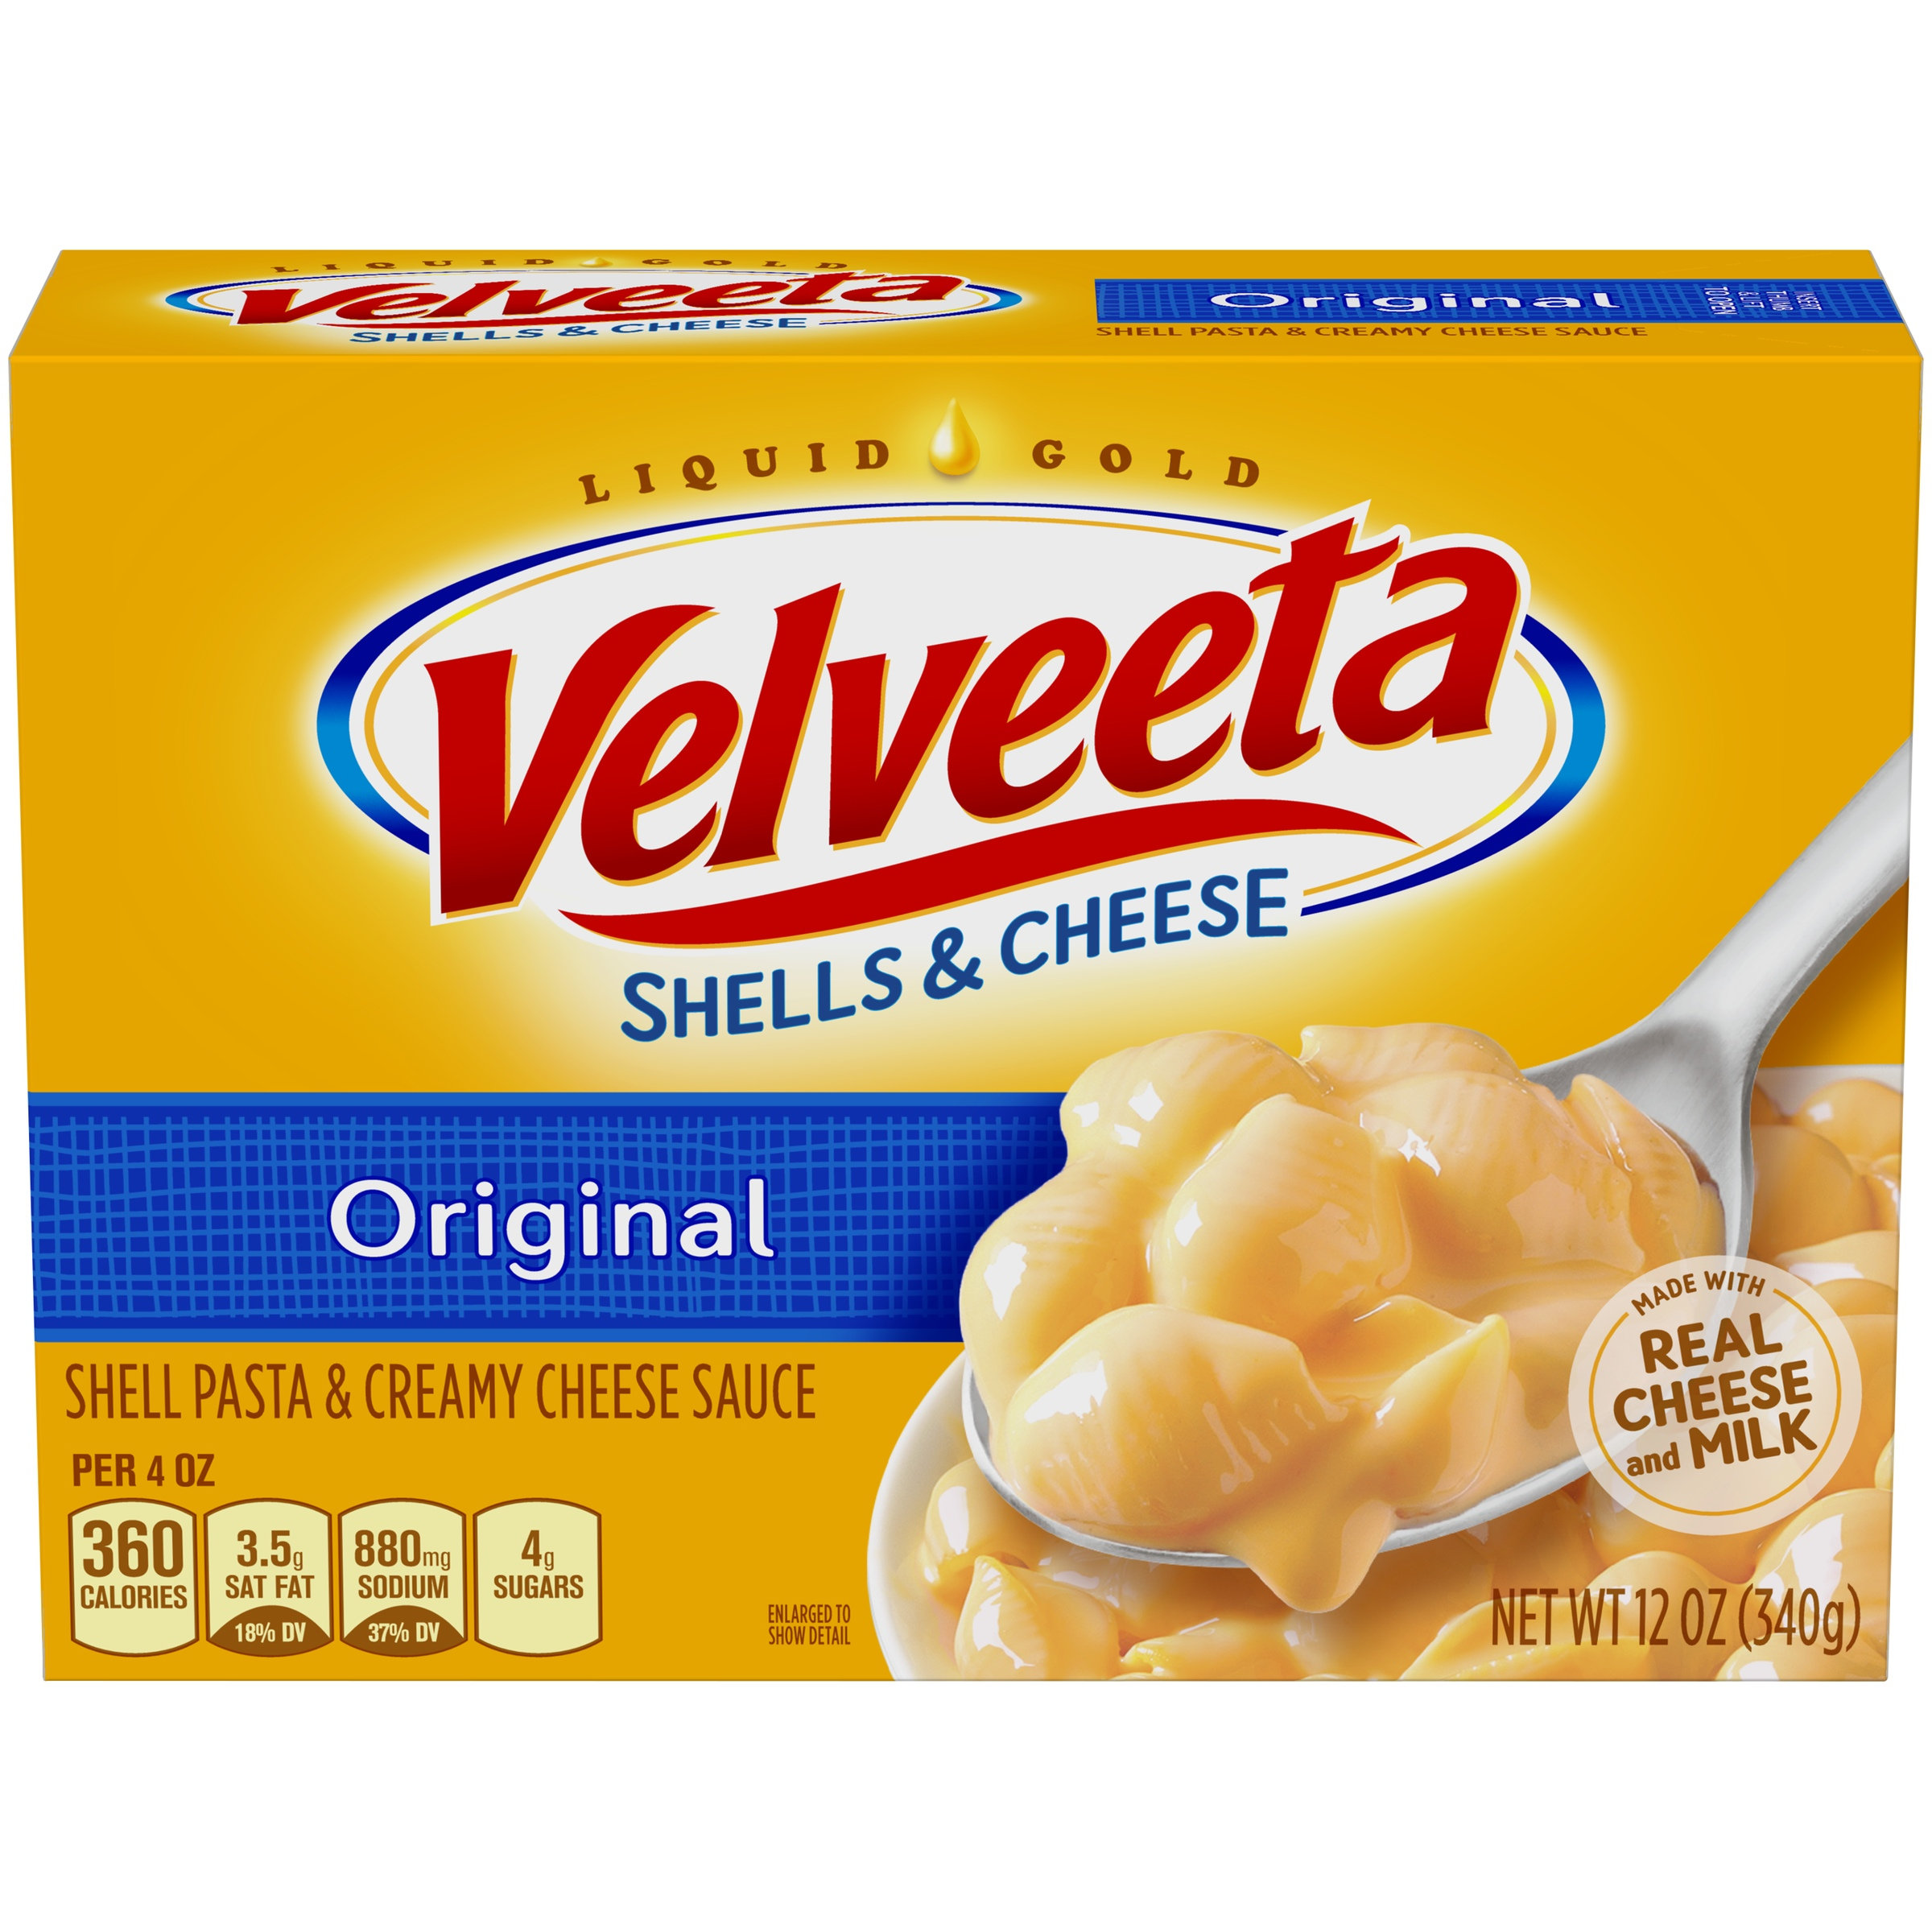 Velveeta Original Shells & Cheese 12 oz. Box